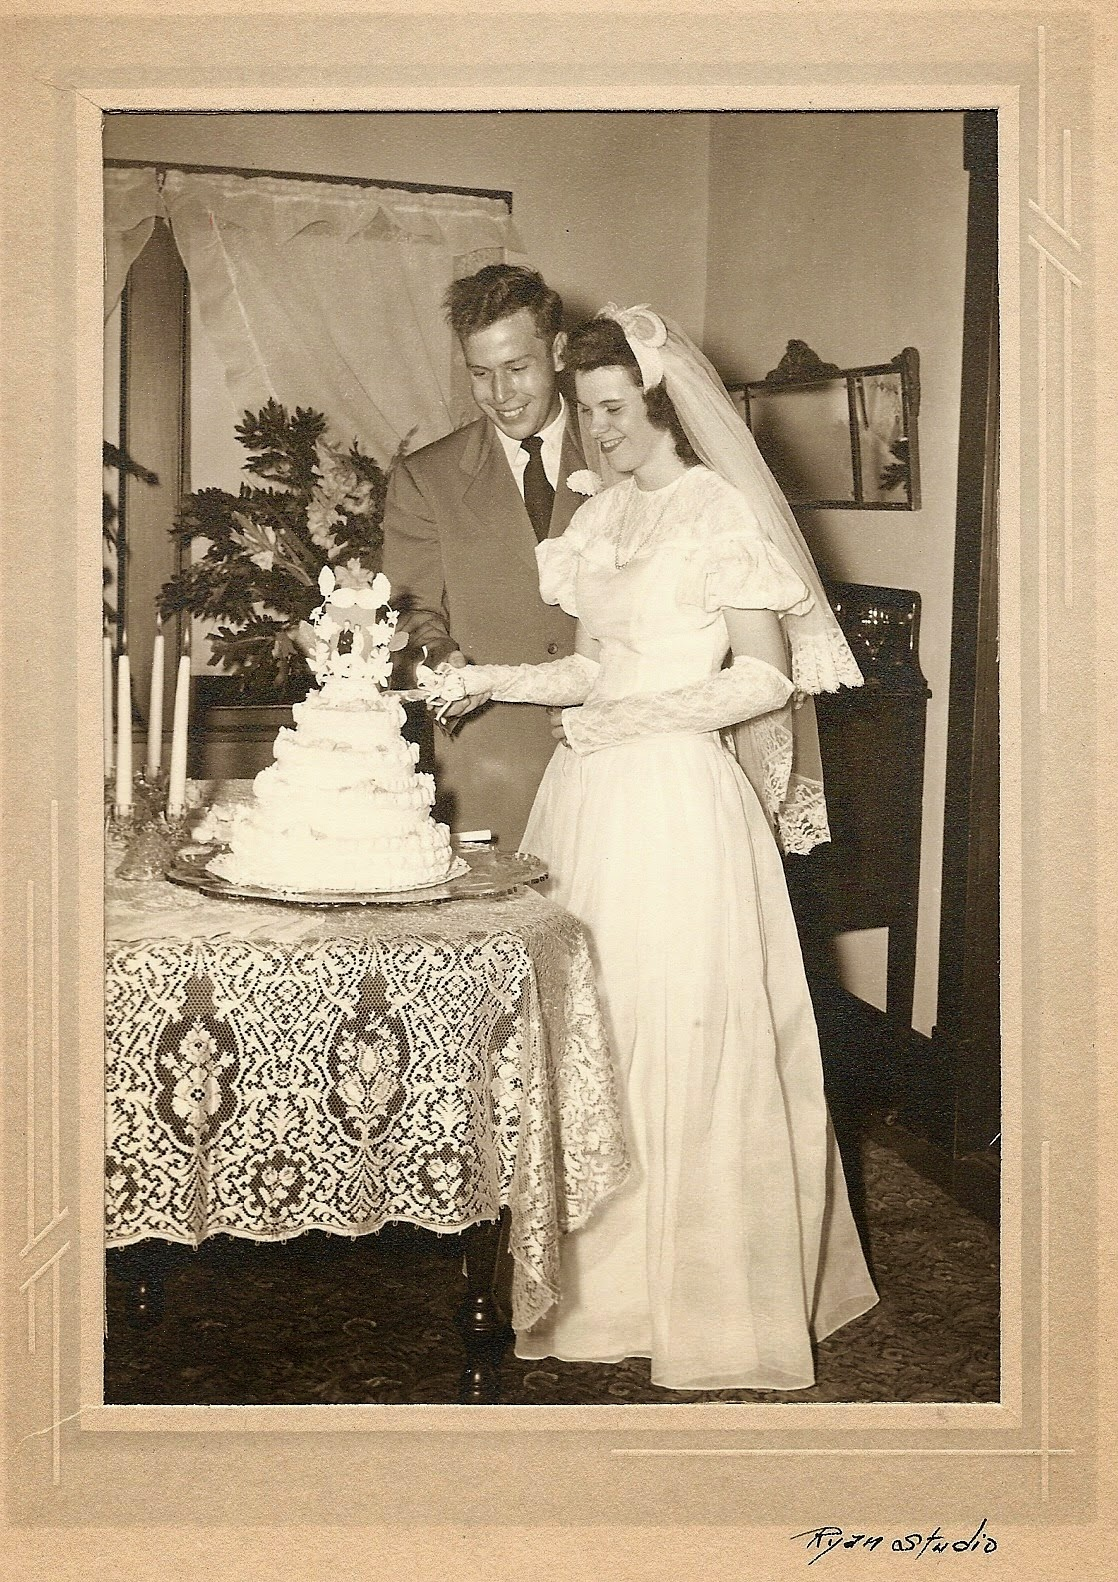 But no cake plate. & A Sentimental Life: The Beauty of American Fostoria